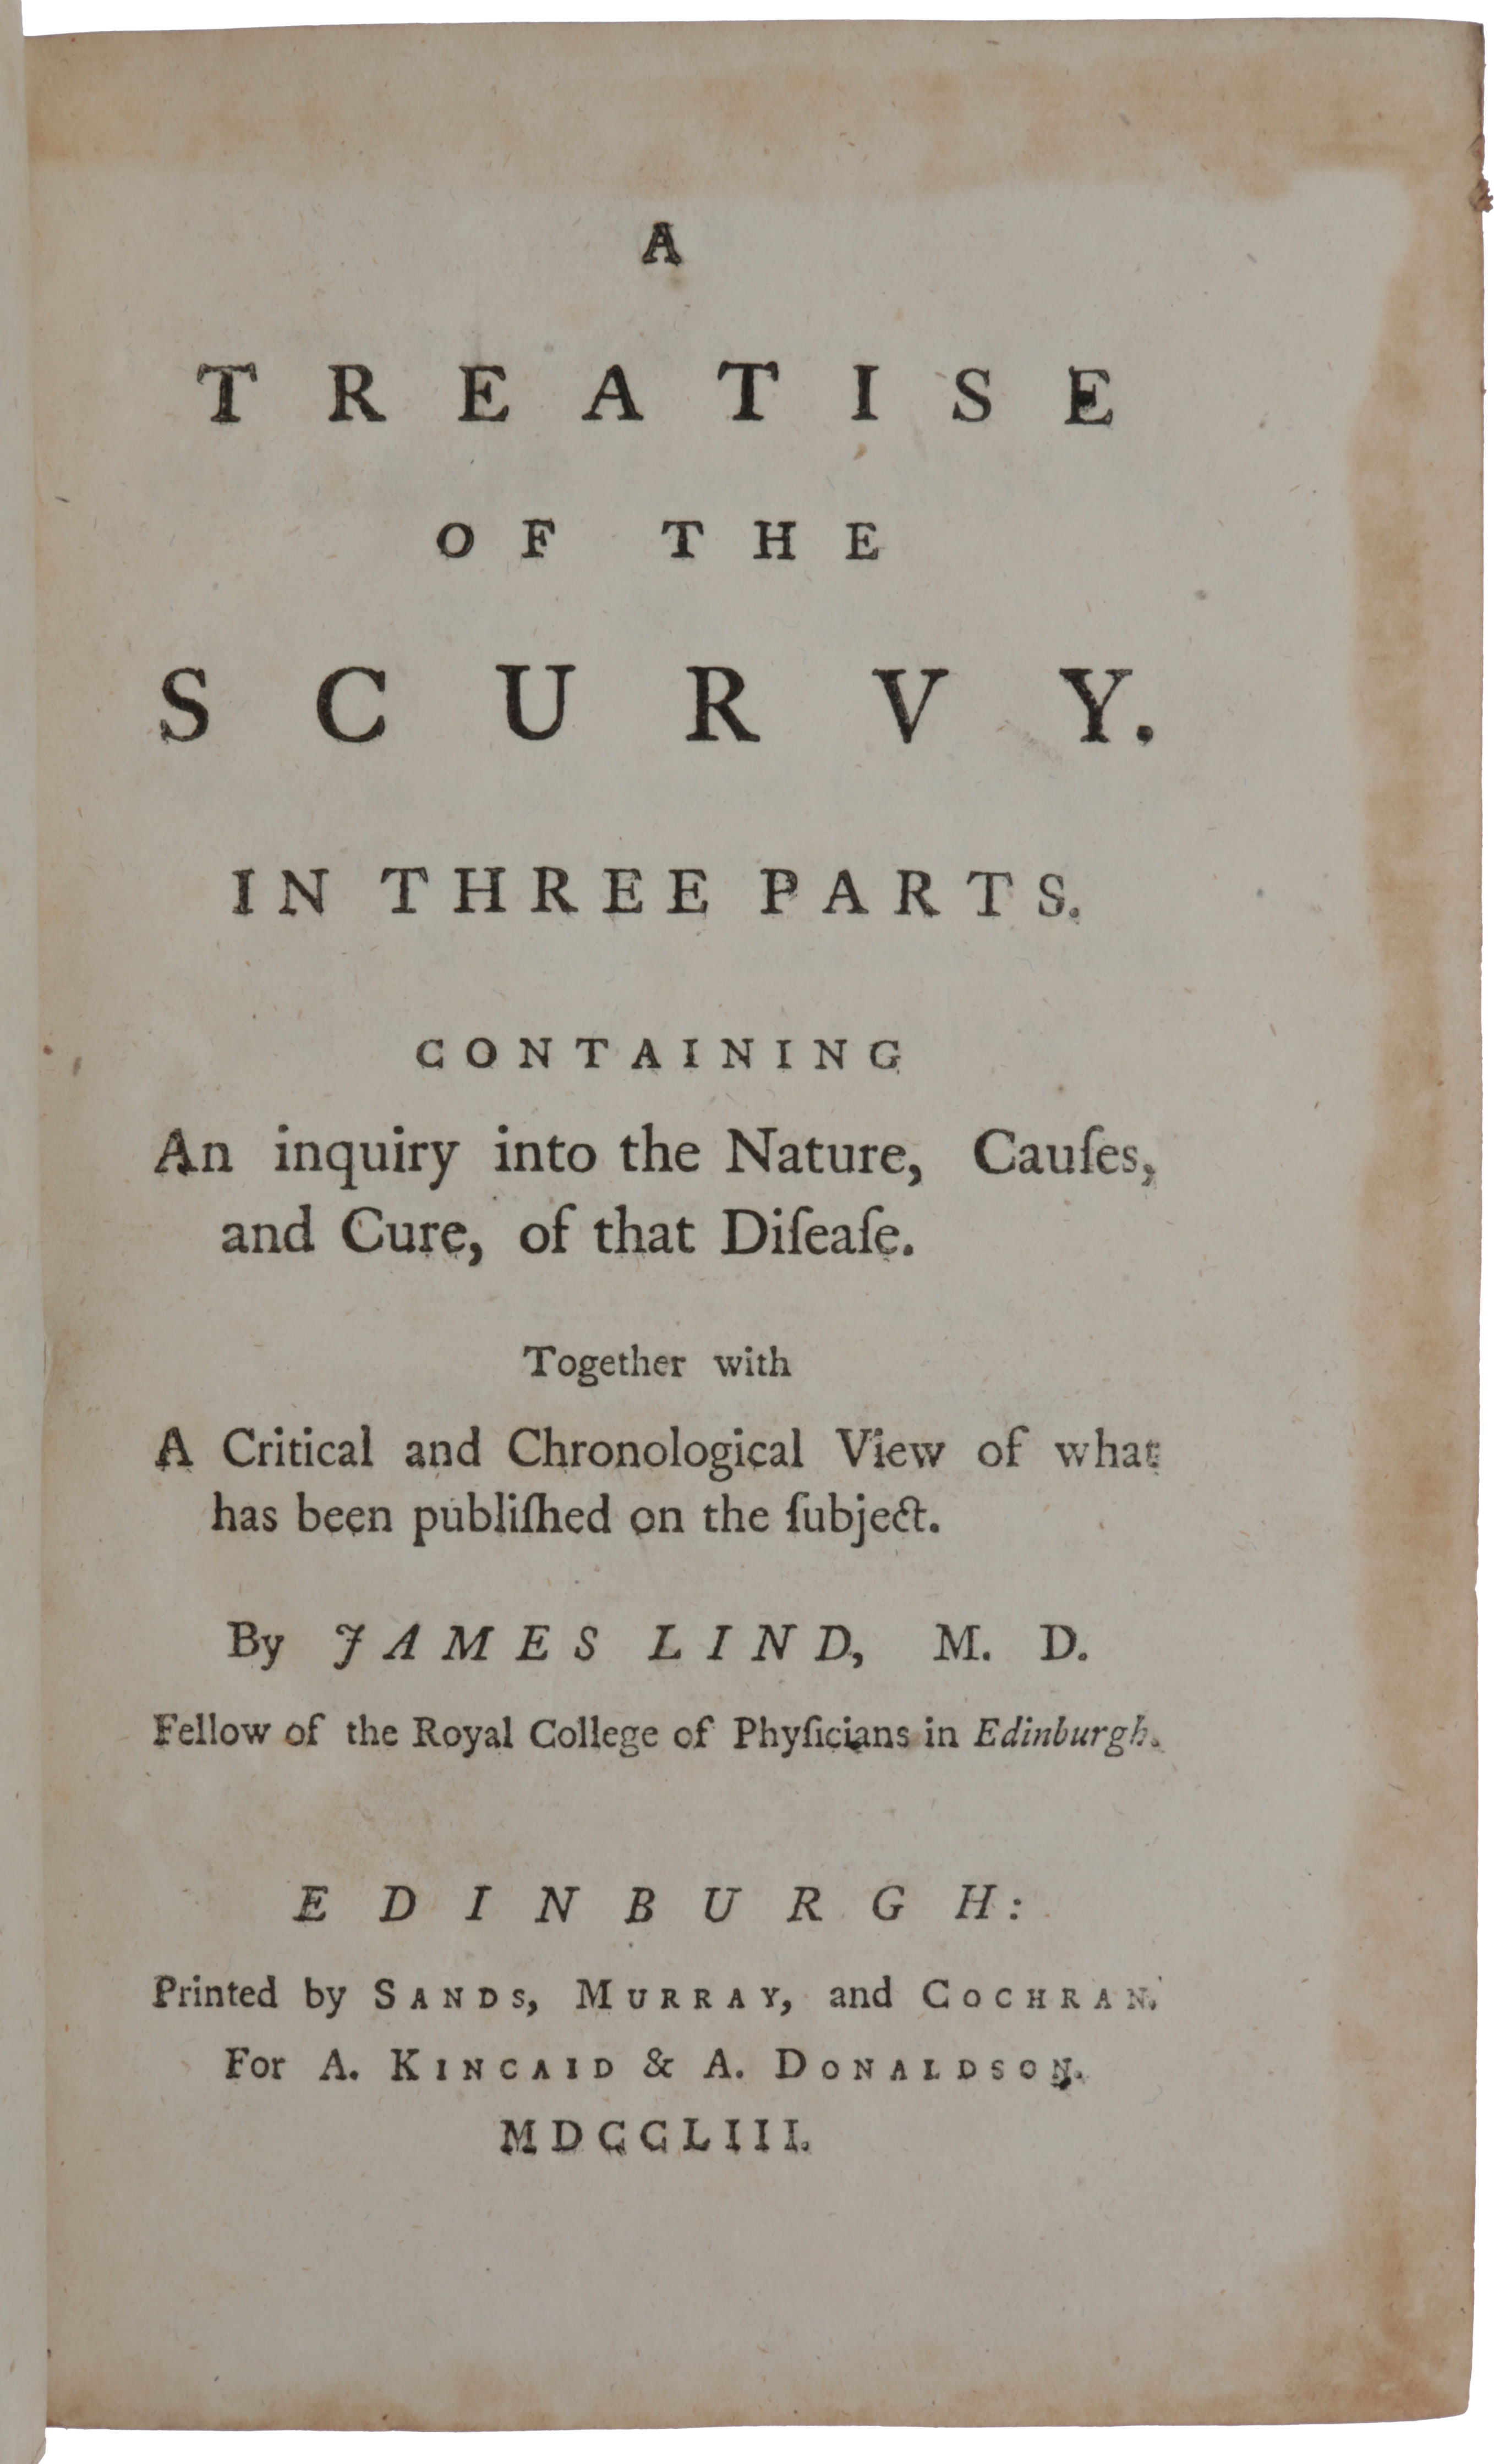 A Treatise of the Scurvy, in three parts. Containing an inquiry into the Nature, Causes, and Cure, of that Disease. Together with a Critical and Chronological View of what has been published on the subject …. James LIND.